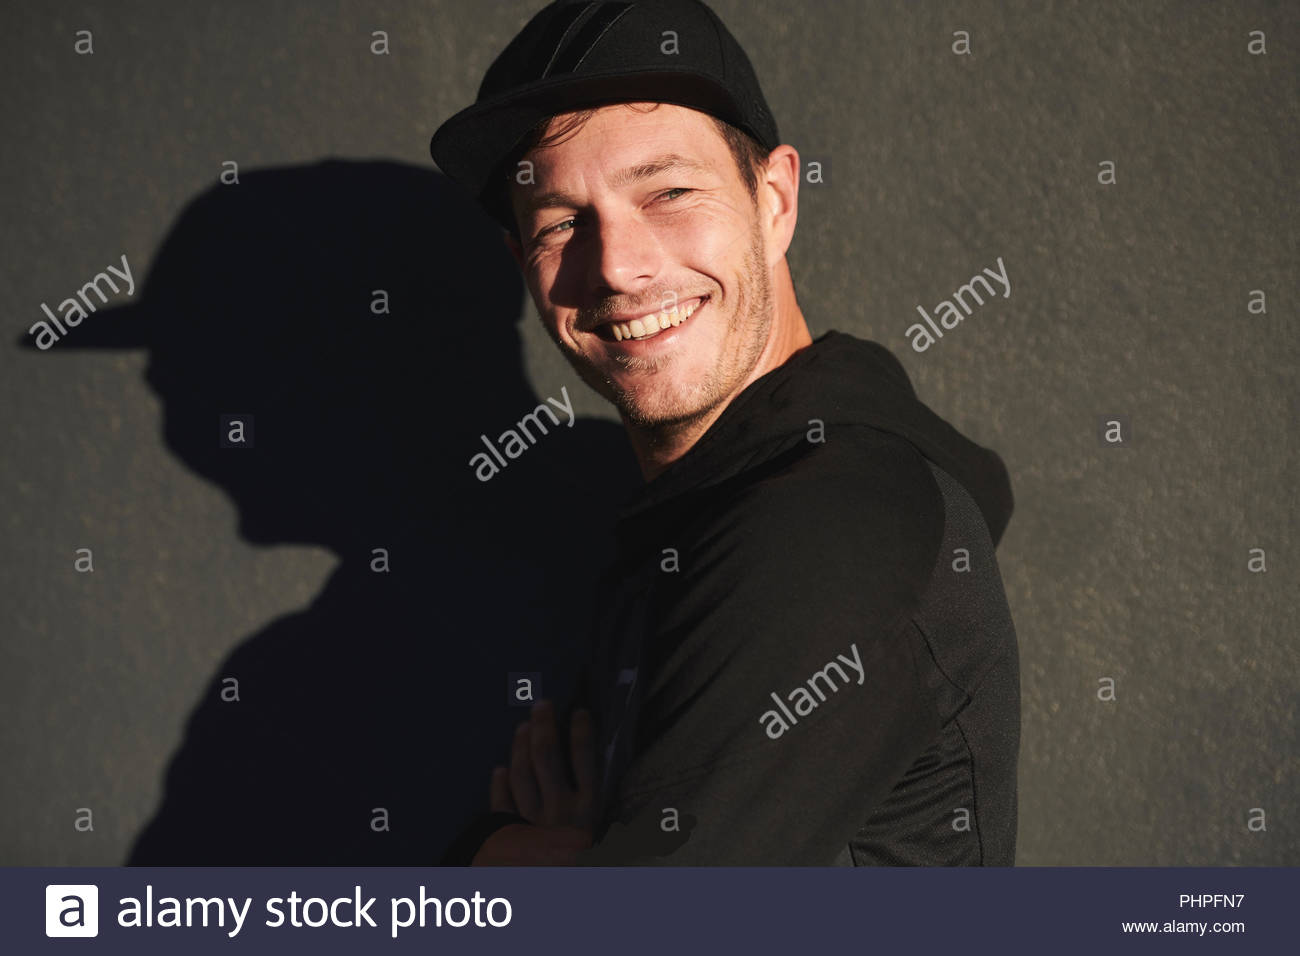 Portrait of smiling man wearing baseball cap Photo Stock